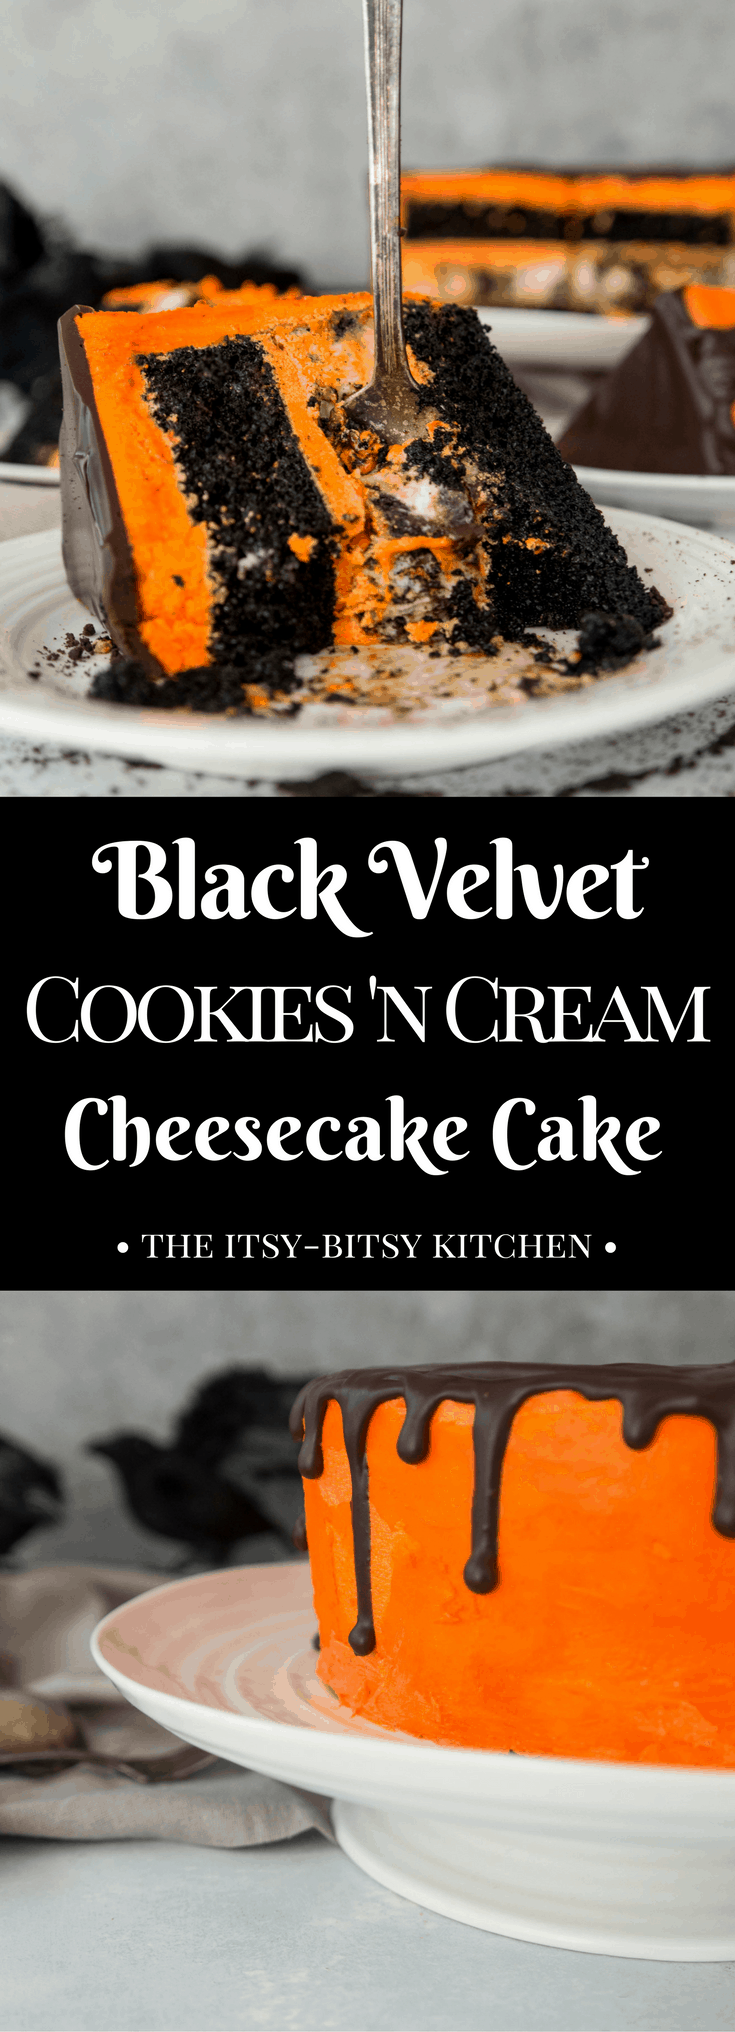 Black velvet cookies and cream cheesecake cake is a delicious dessert for your Halloween party! chocolate cake, Oreo cheesecake, vanilla frosting--what more could you ask for? recipe and how to via itsybitsykitchen.com #Halloween #cheesecake #cake